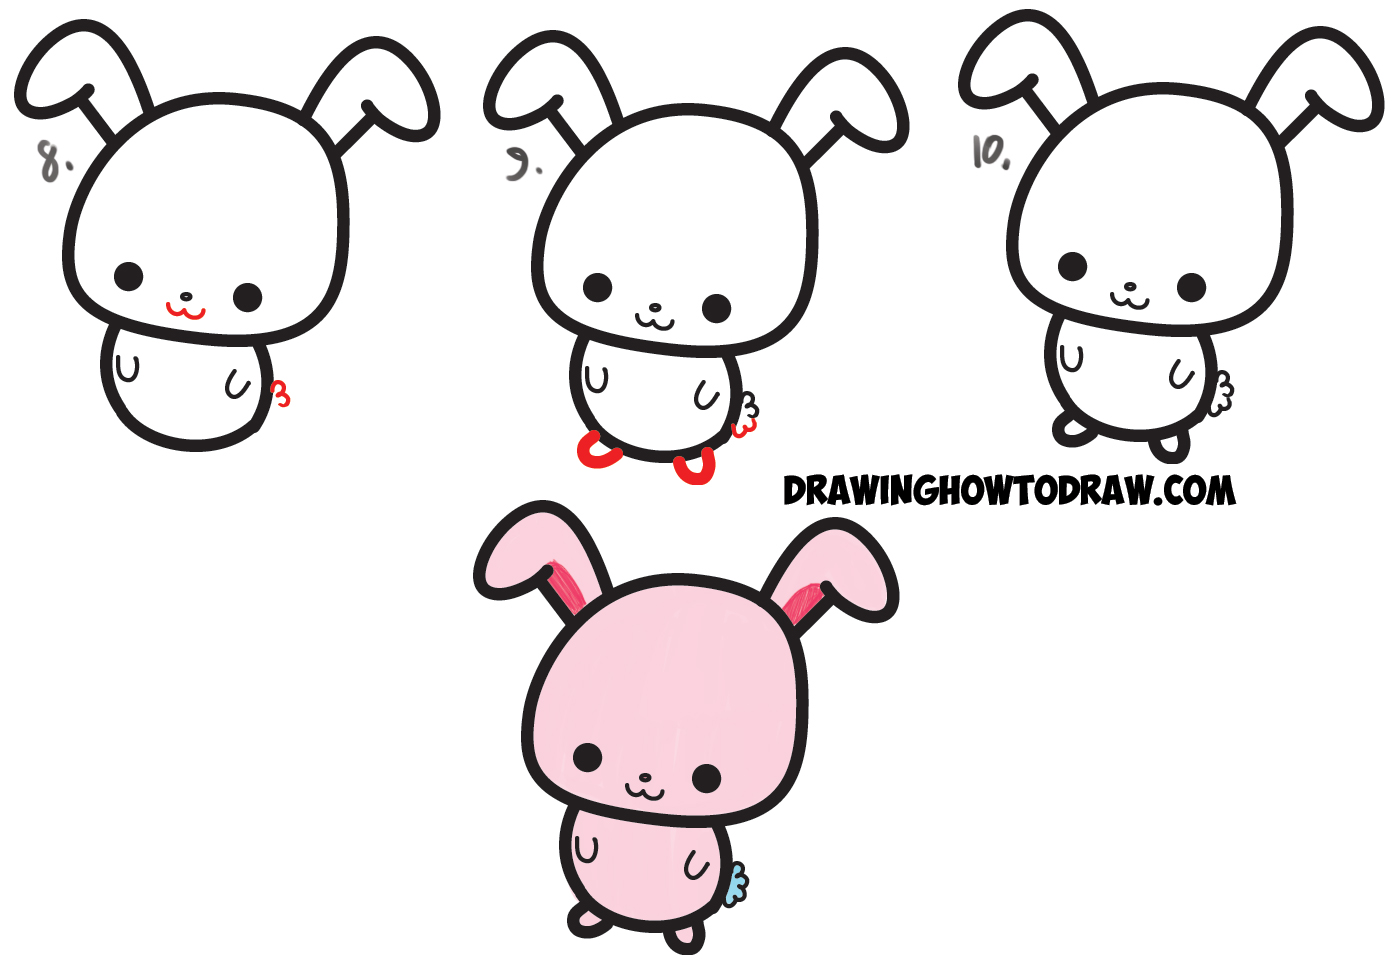 How To Draw A Cute Easy Cartoon Kawaii Bunny Rabbit From A Semicolon